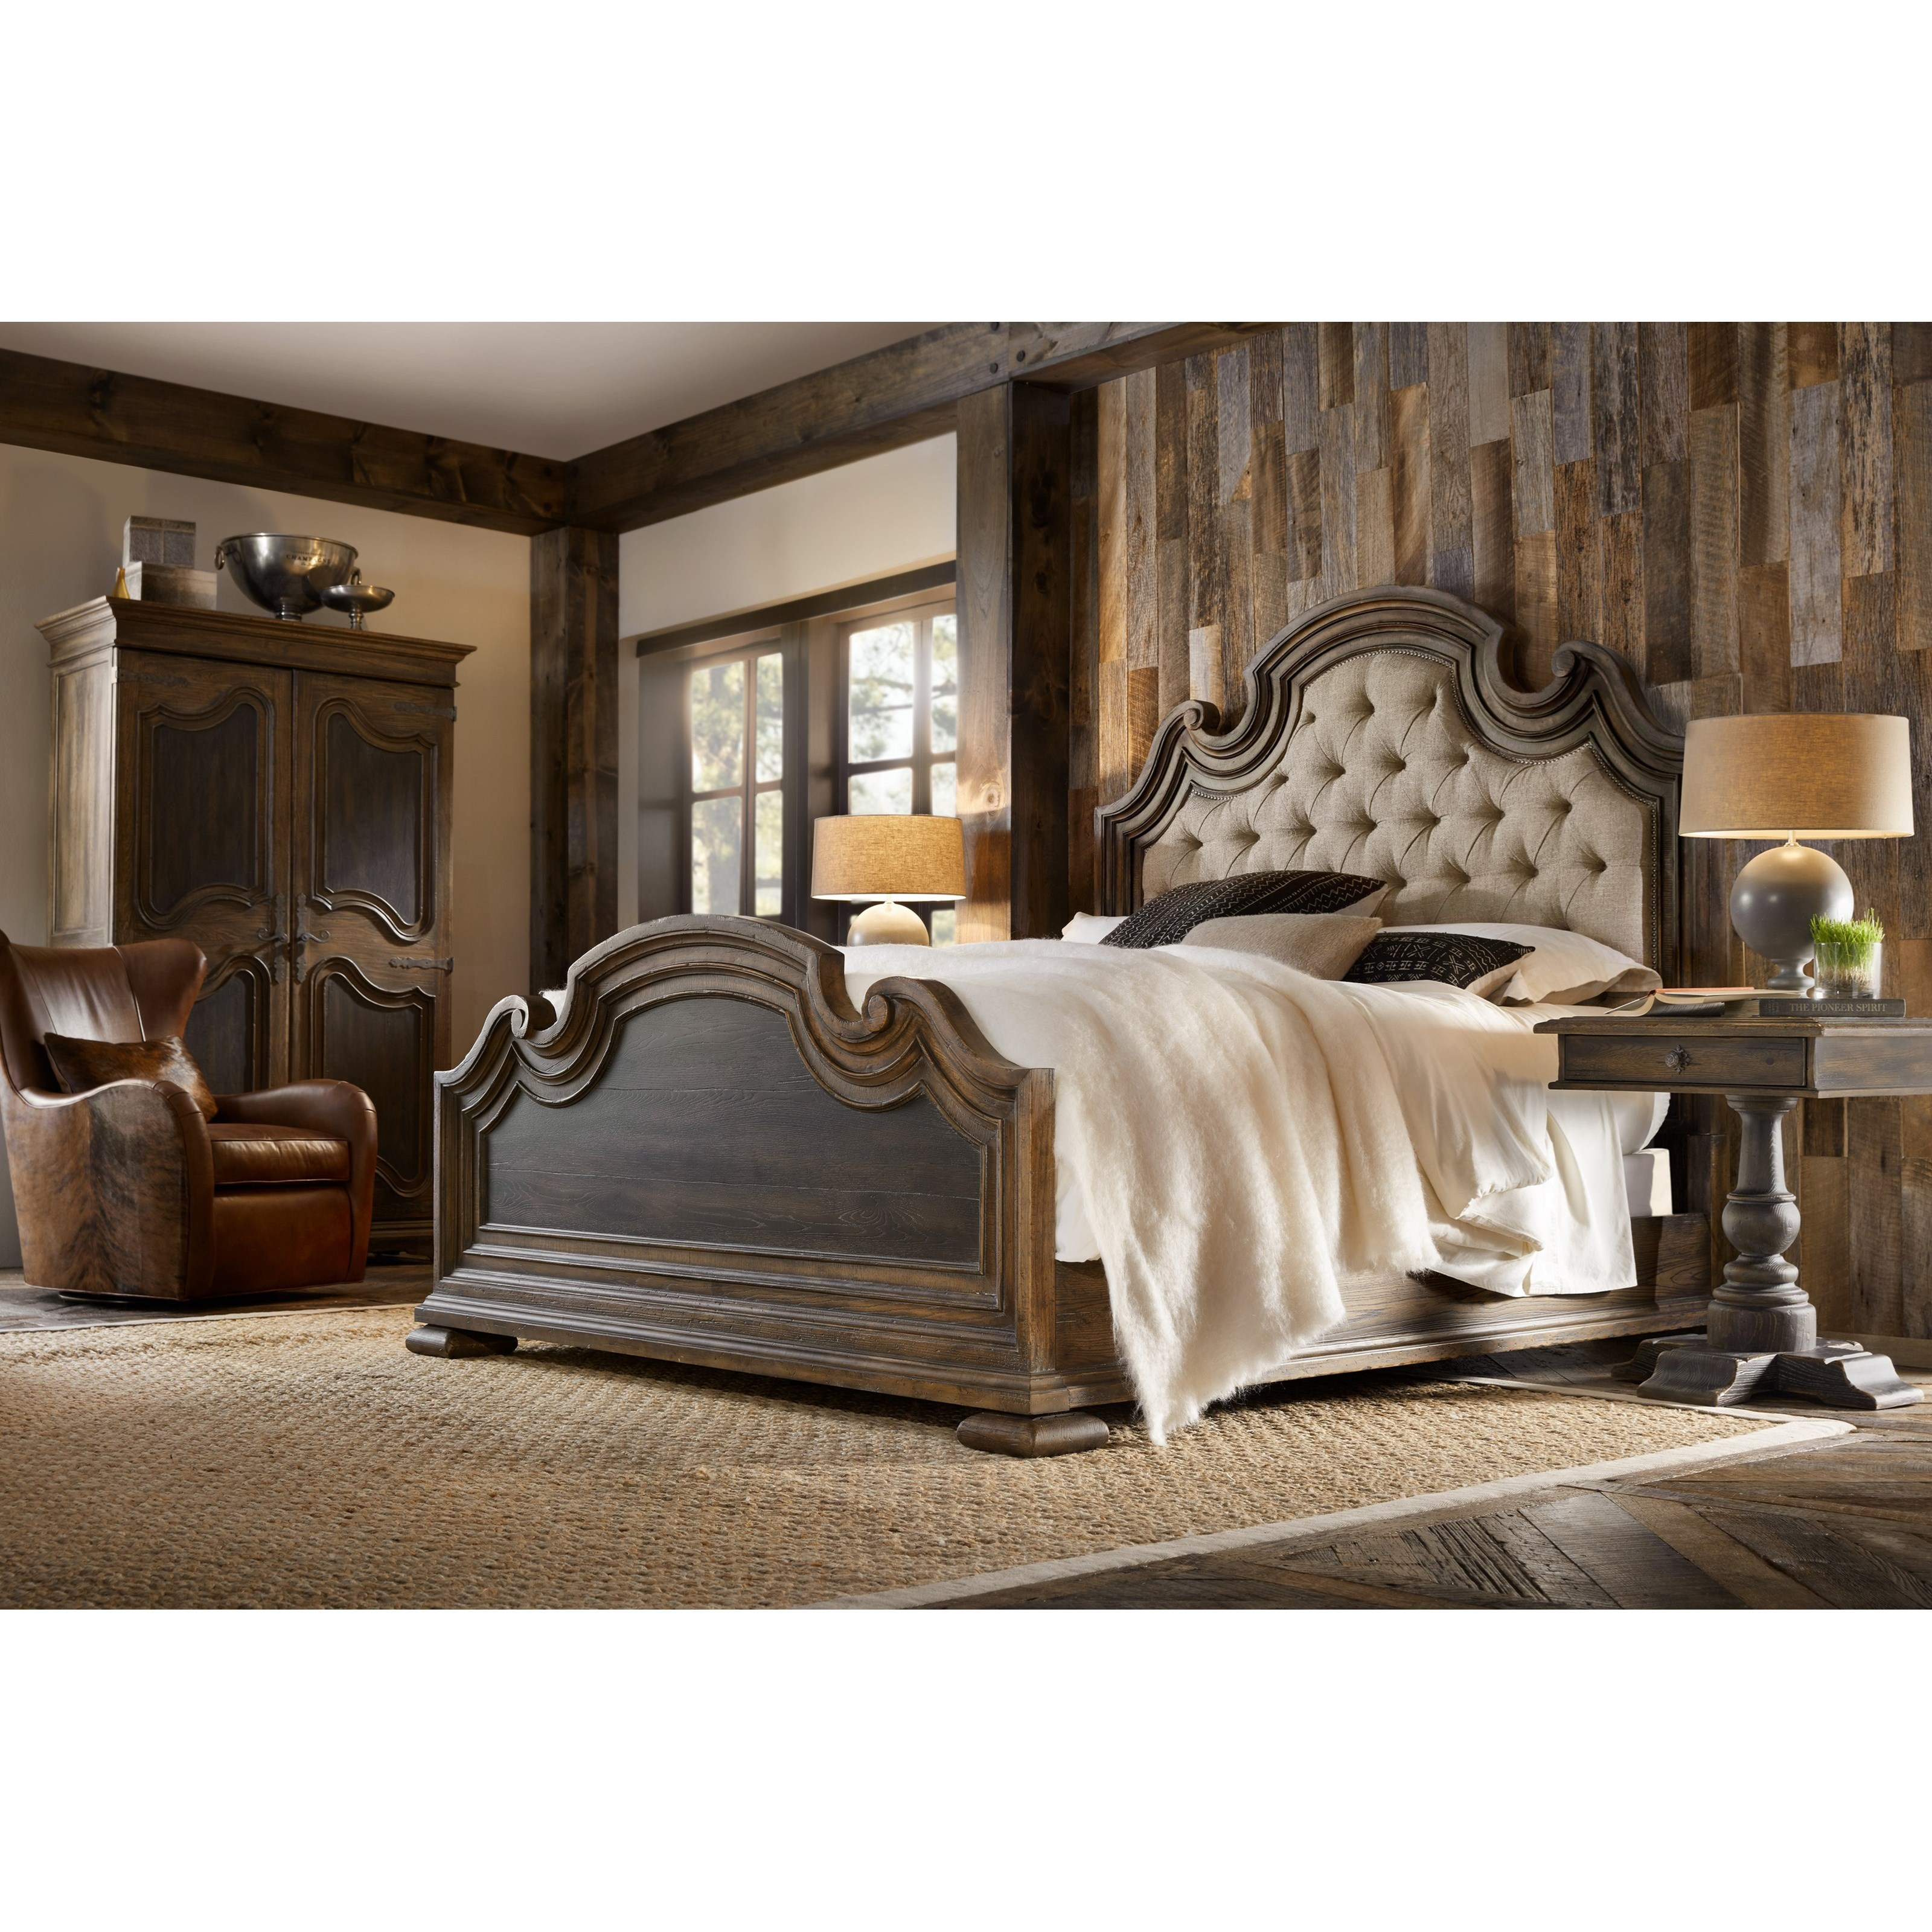 Hooker furniture hill country lakehills wardrobe with full for Country style bedroom suites